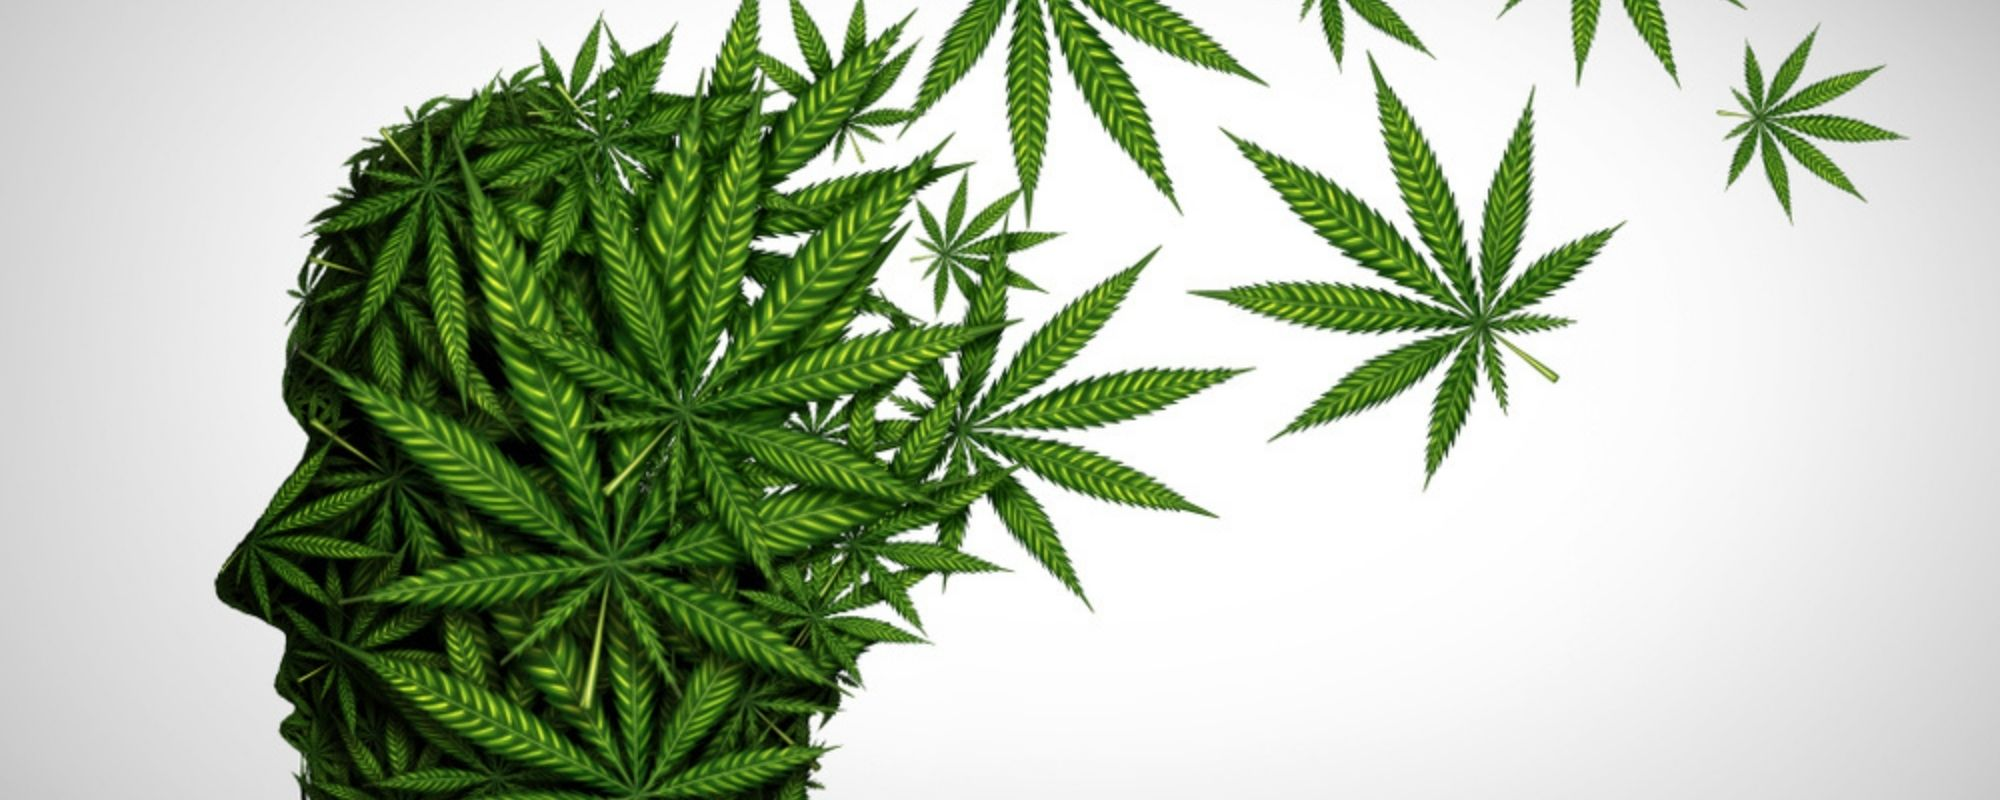 Does Cannabis Cause Memory Loss?